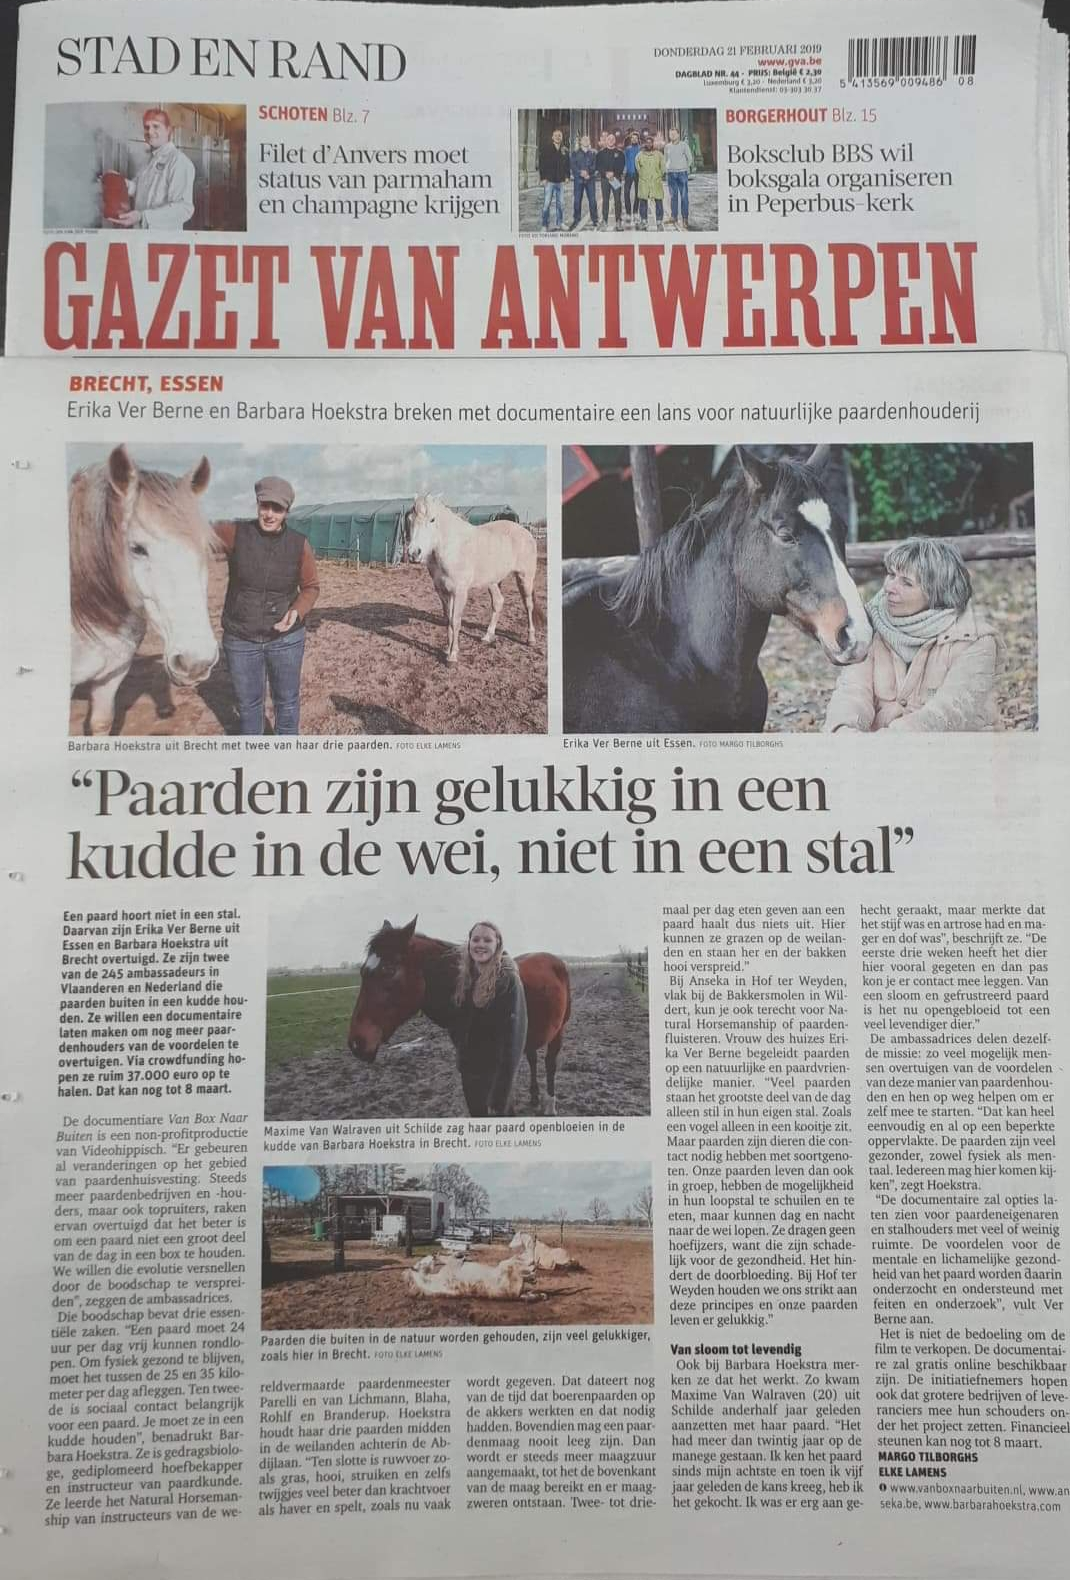 FRHP in de gazet